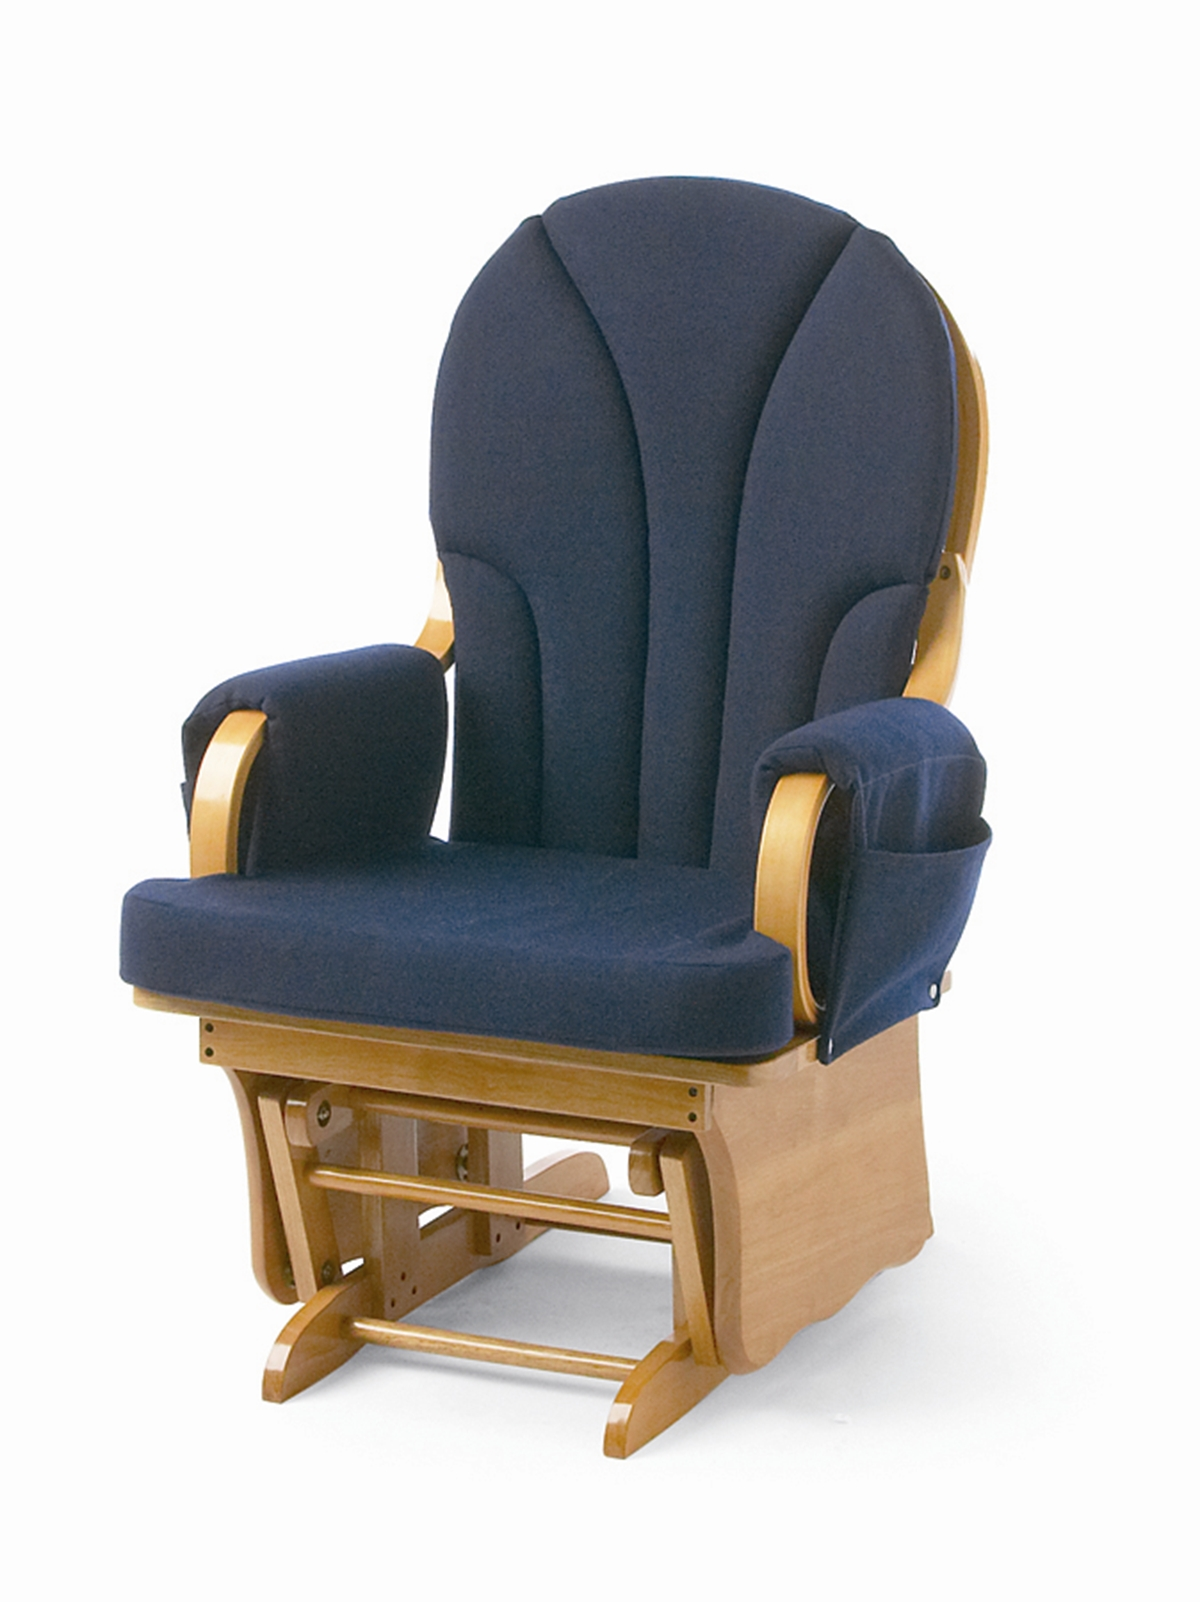 Foundations Lullaby Adult Glider Rocker - Blue